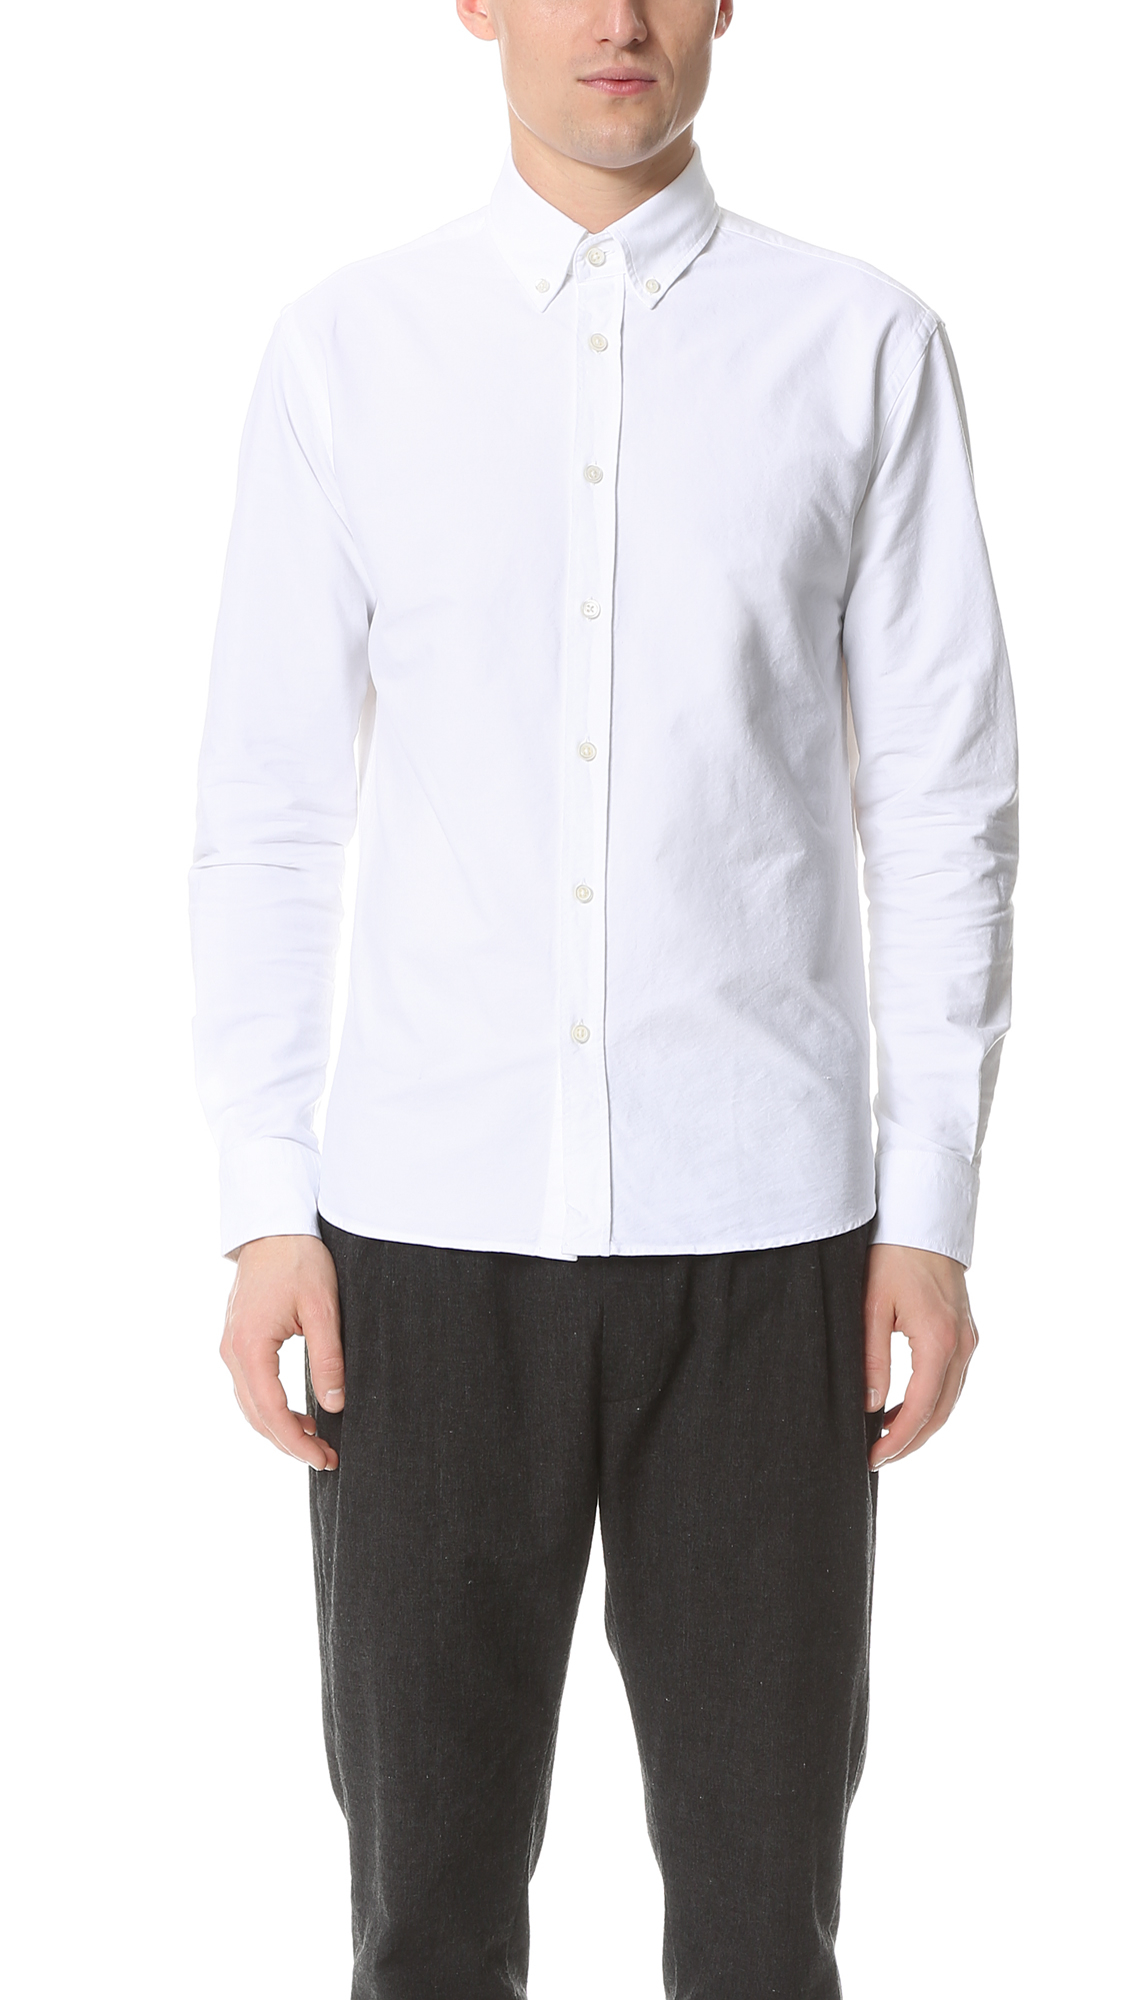 Capital goods button down oxford shirt in white for men lyst for White button down oxford shirt